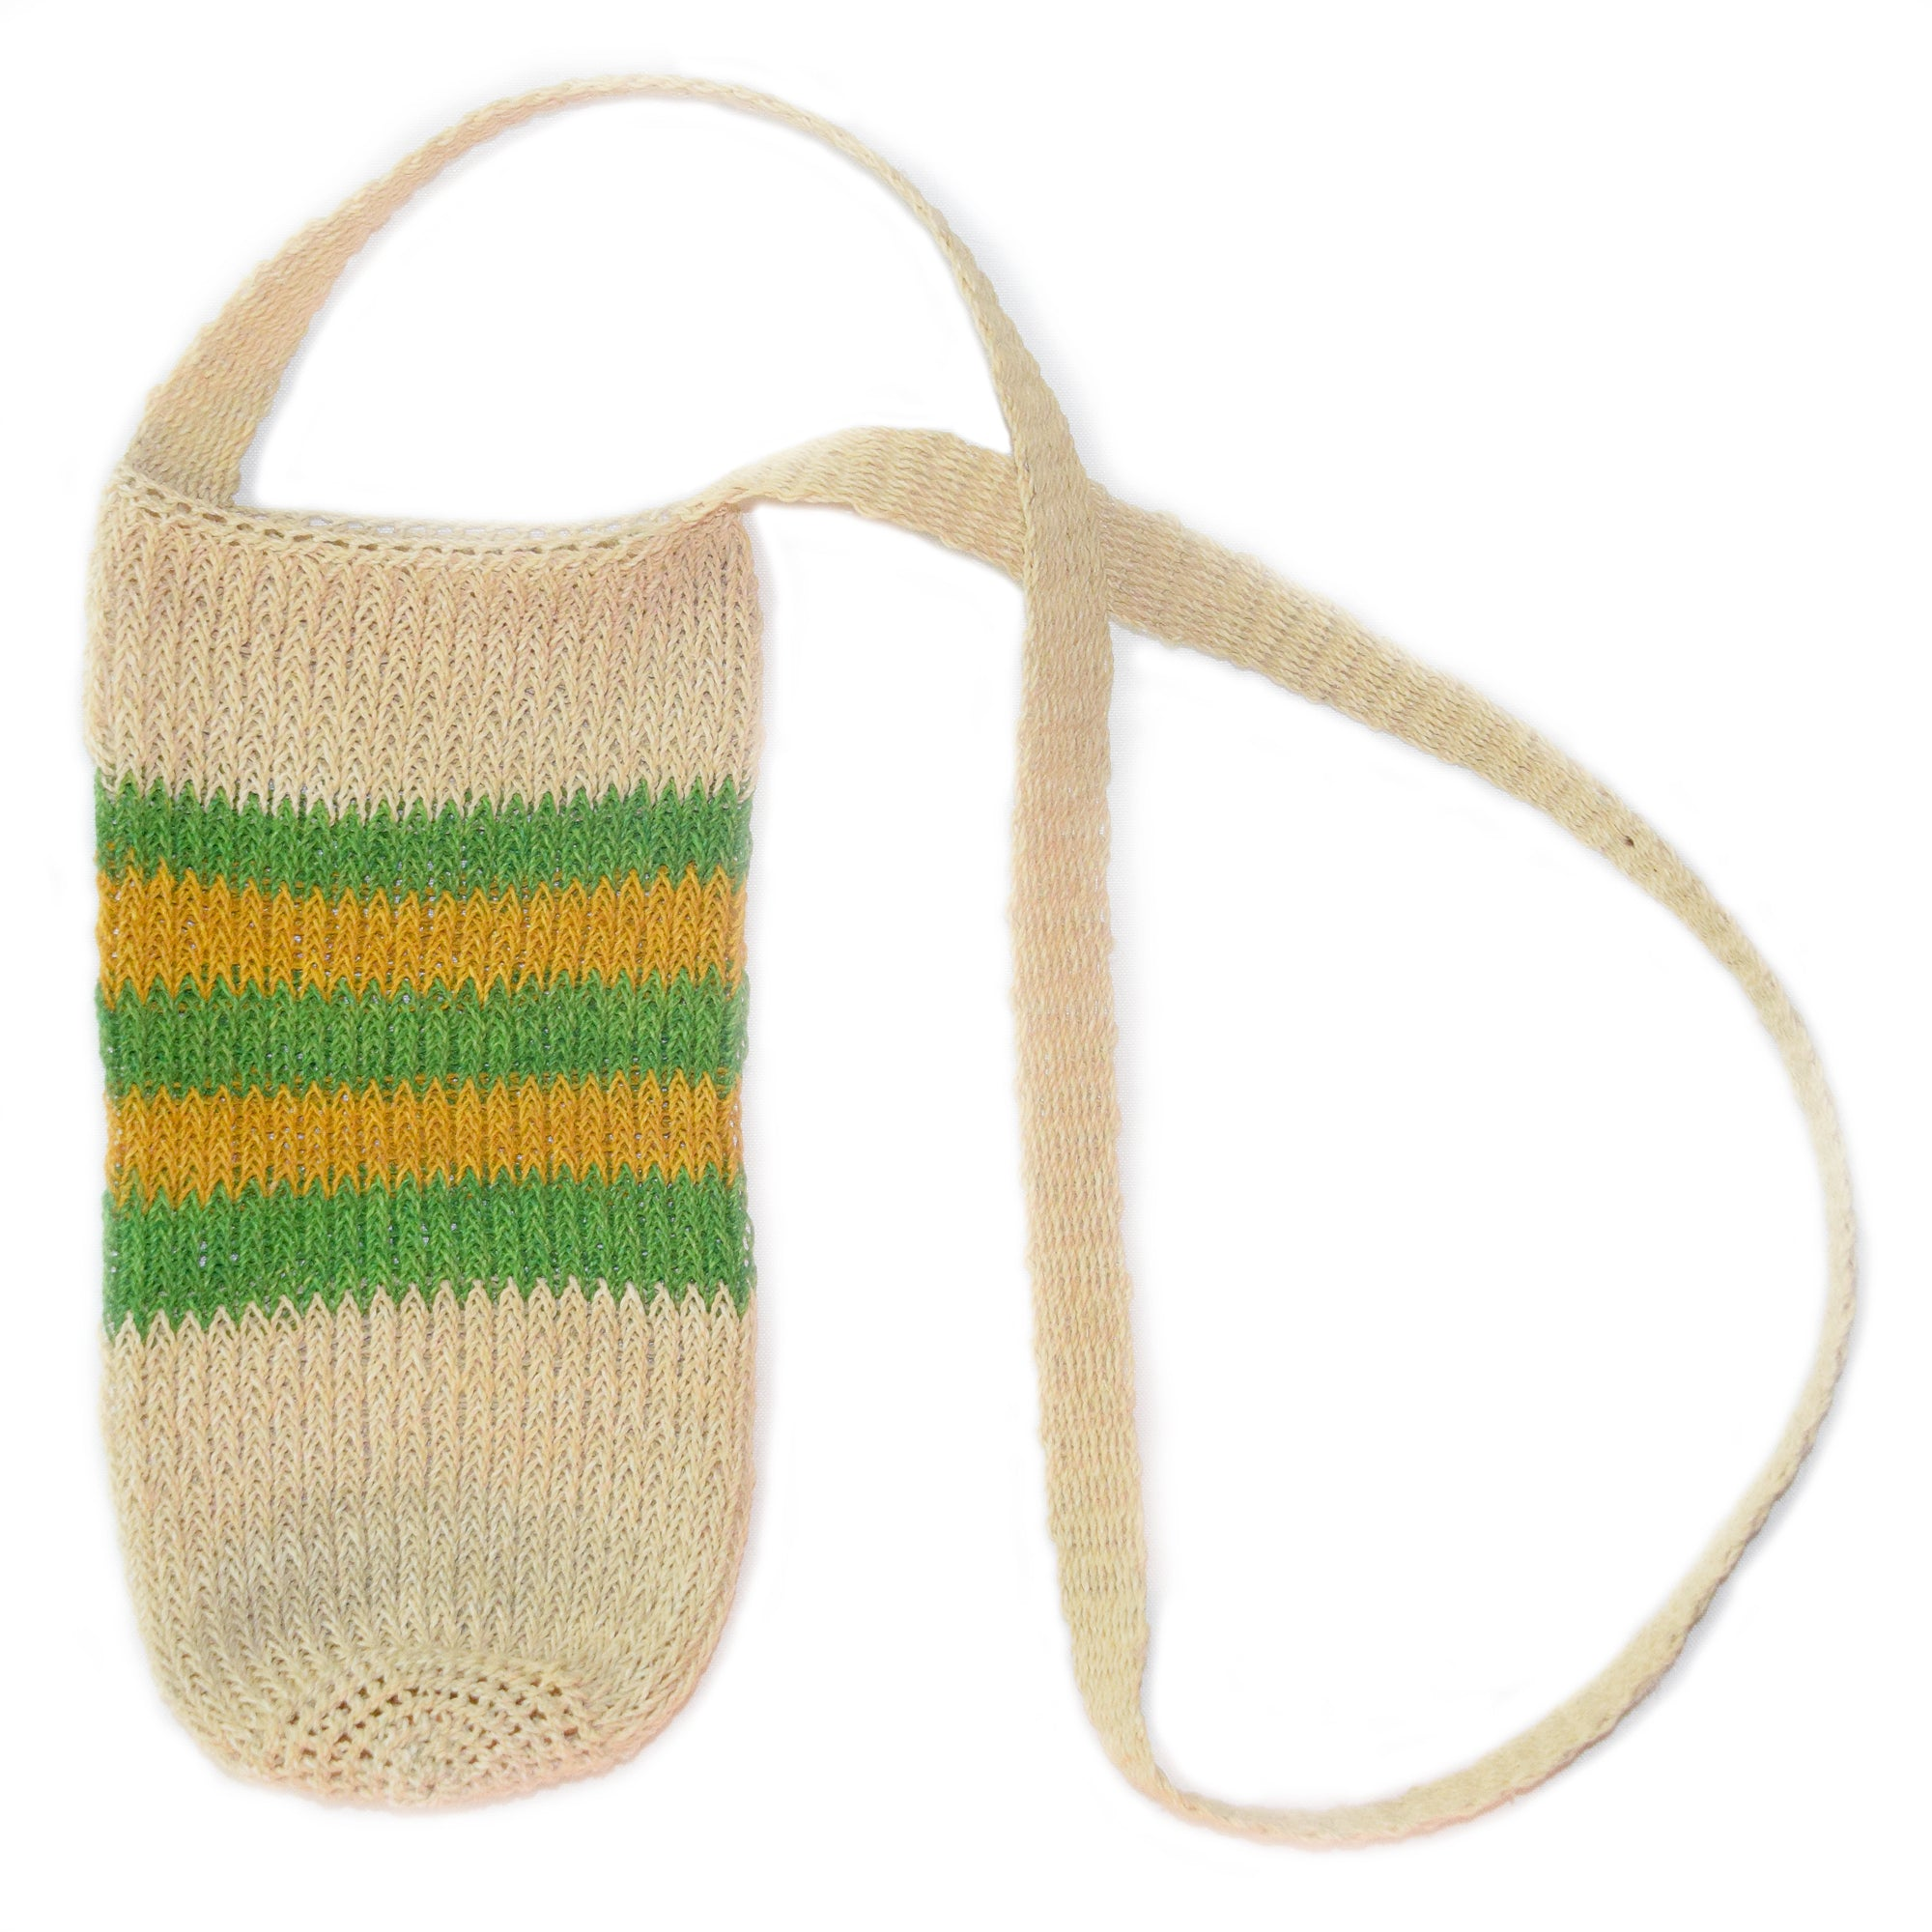 Fair-Trade Bottle Carrier/Wine Tote double green and yellow bands (WCC162)